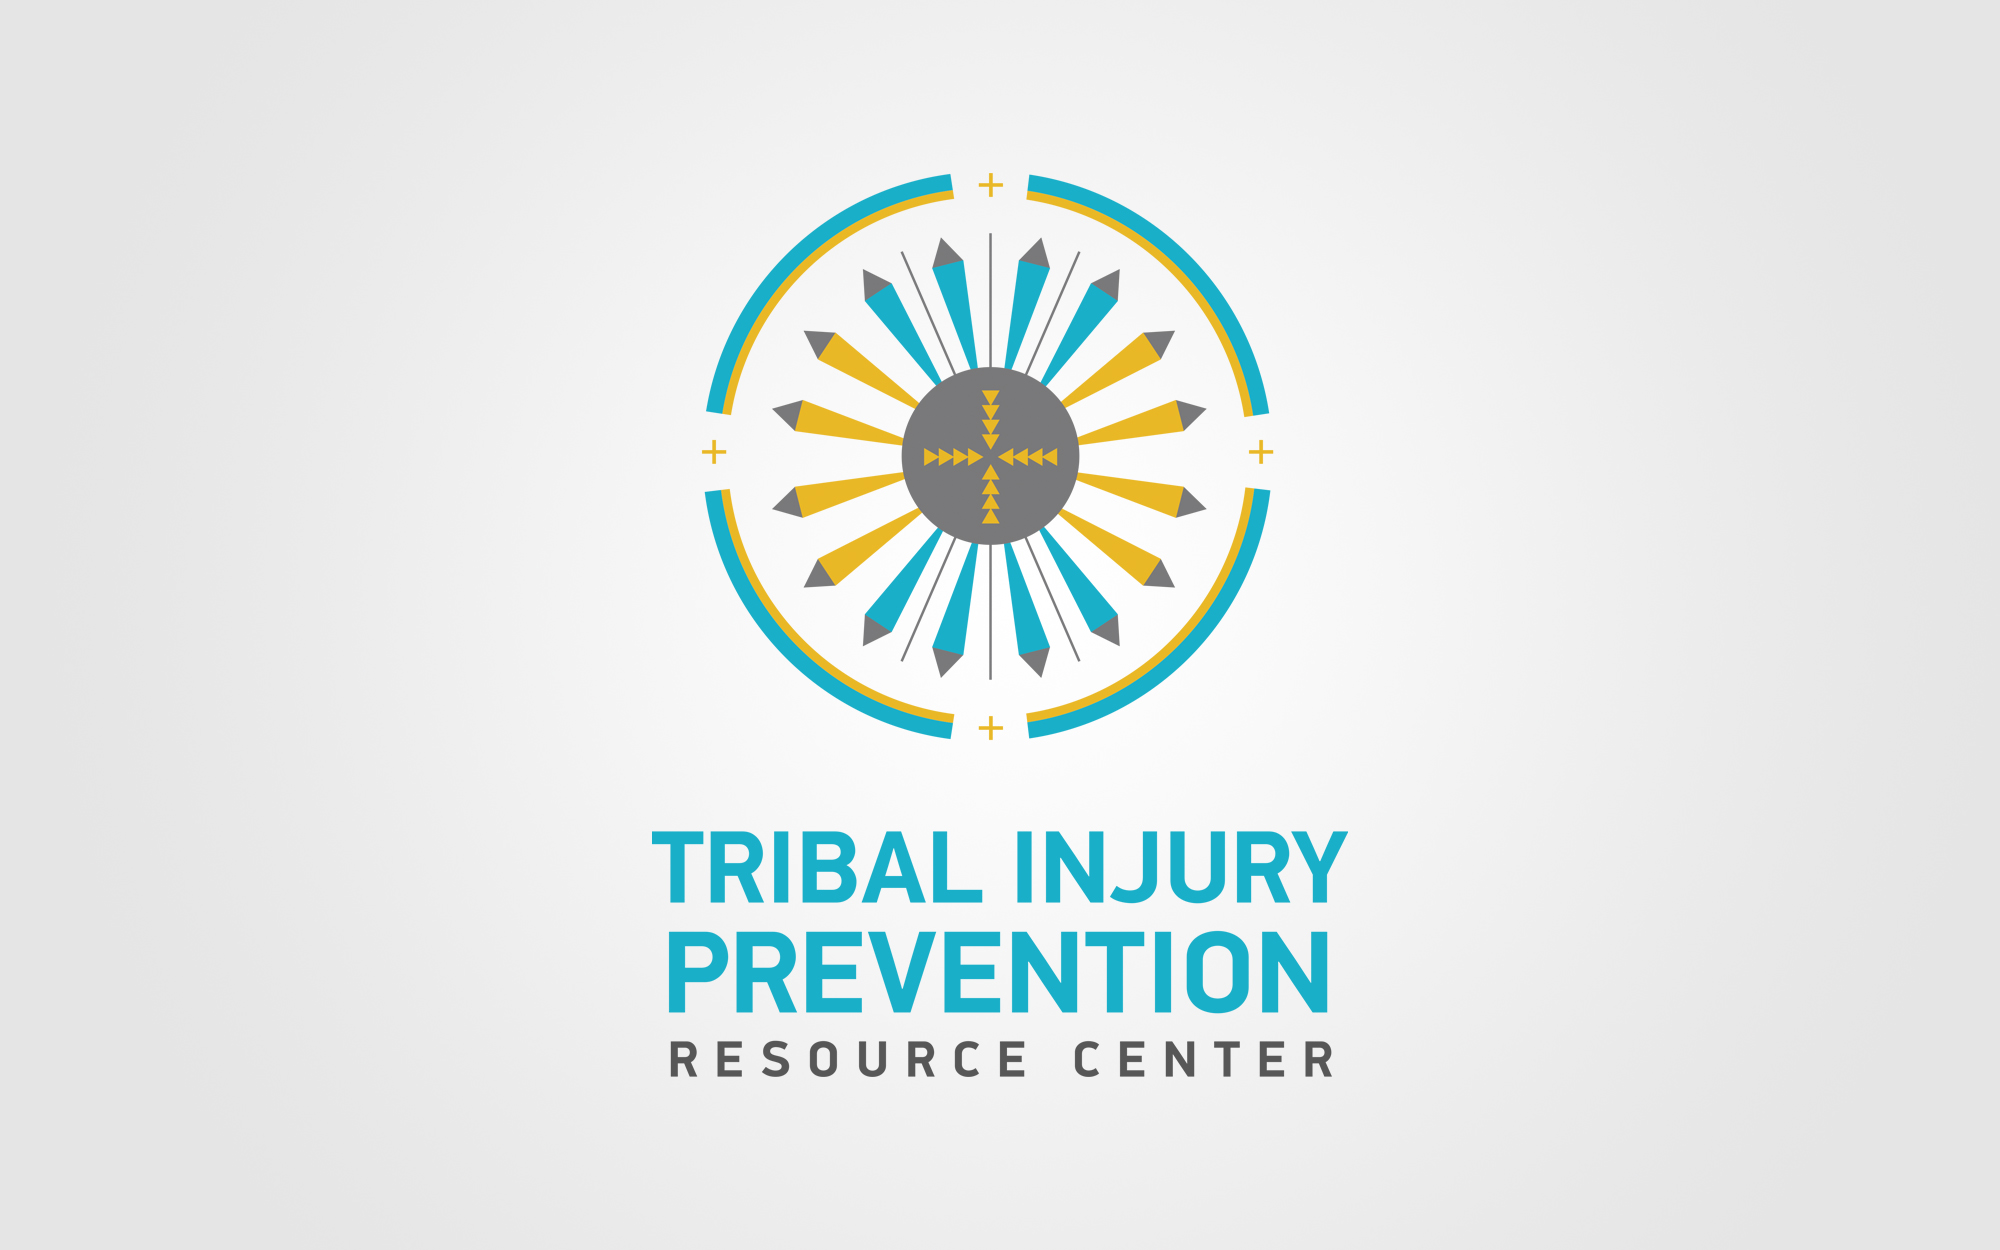 TribalInjuryPrevention_2020_02